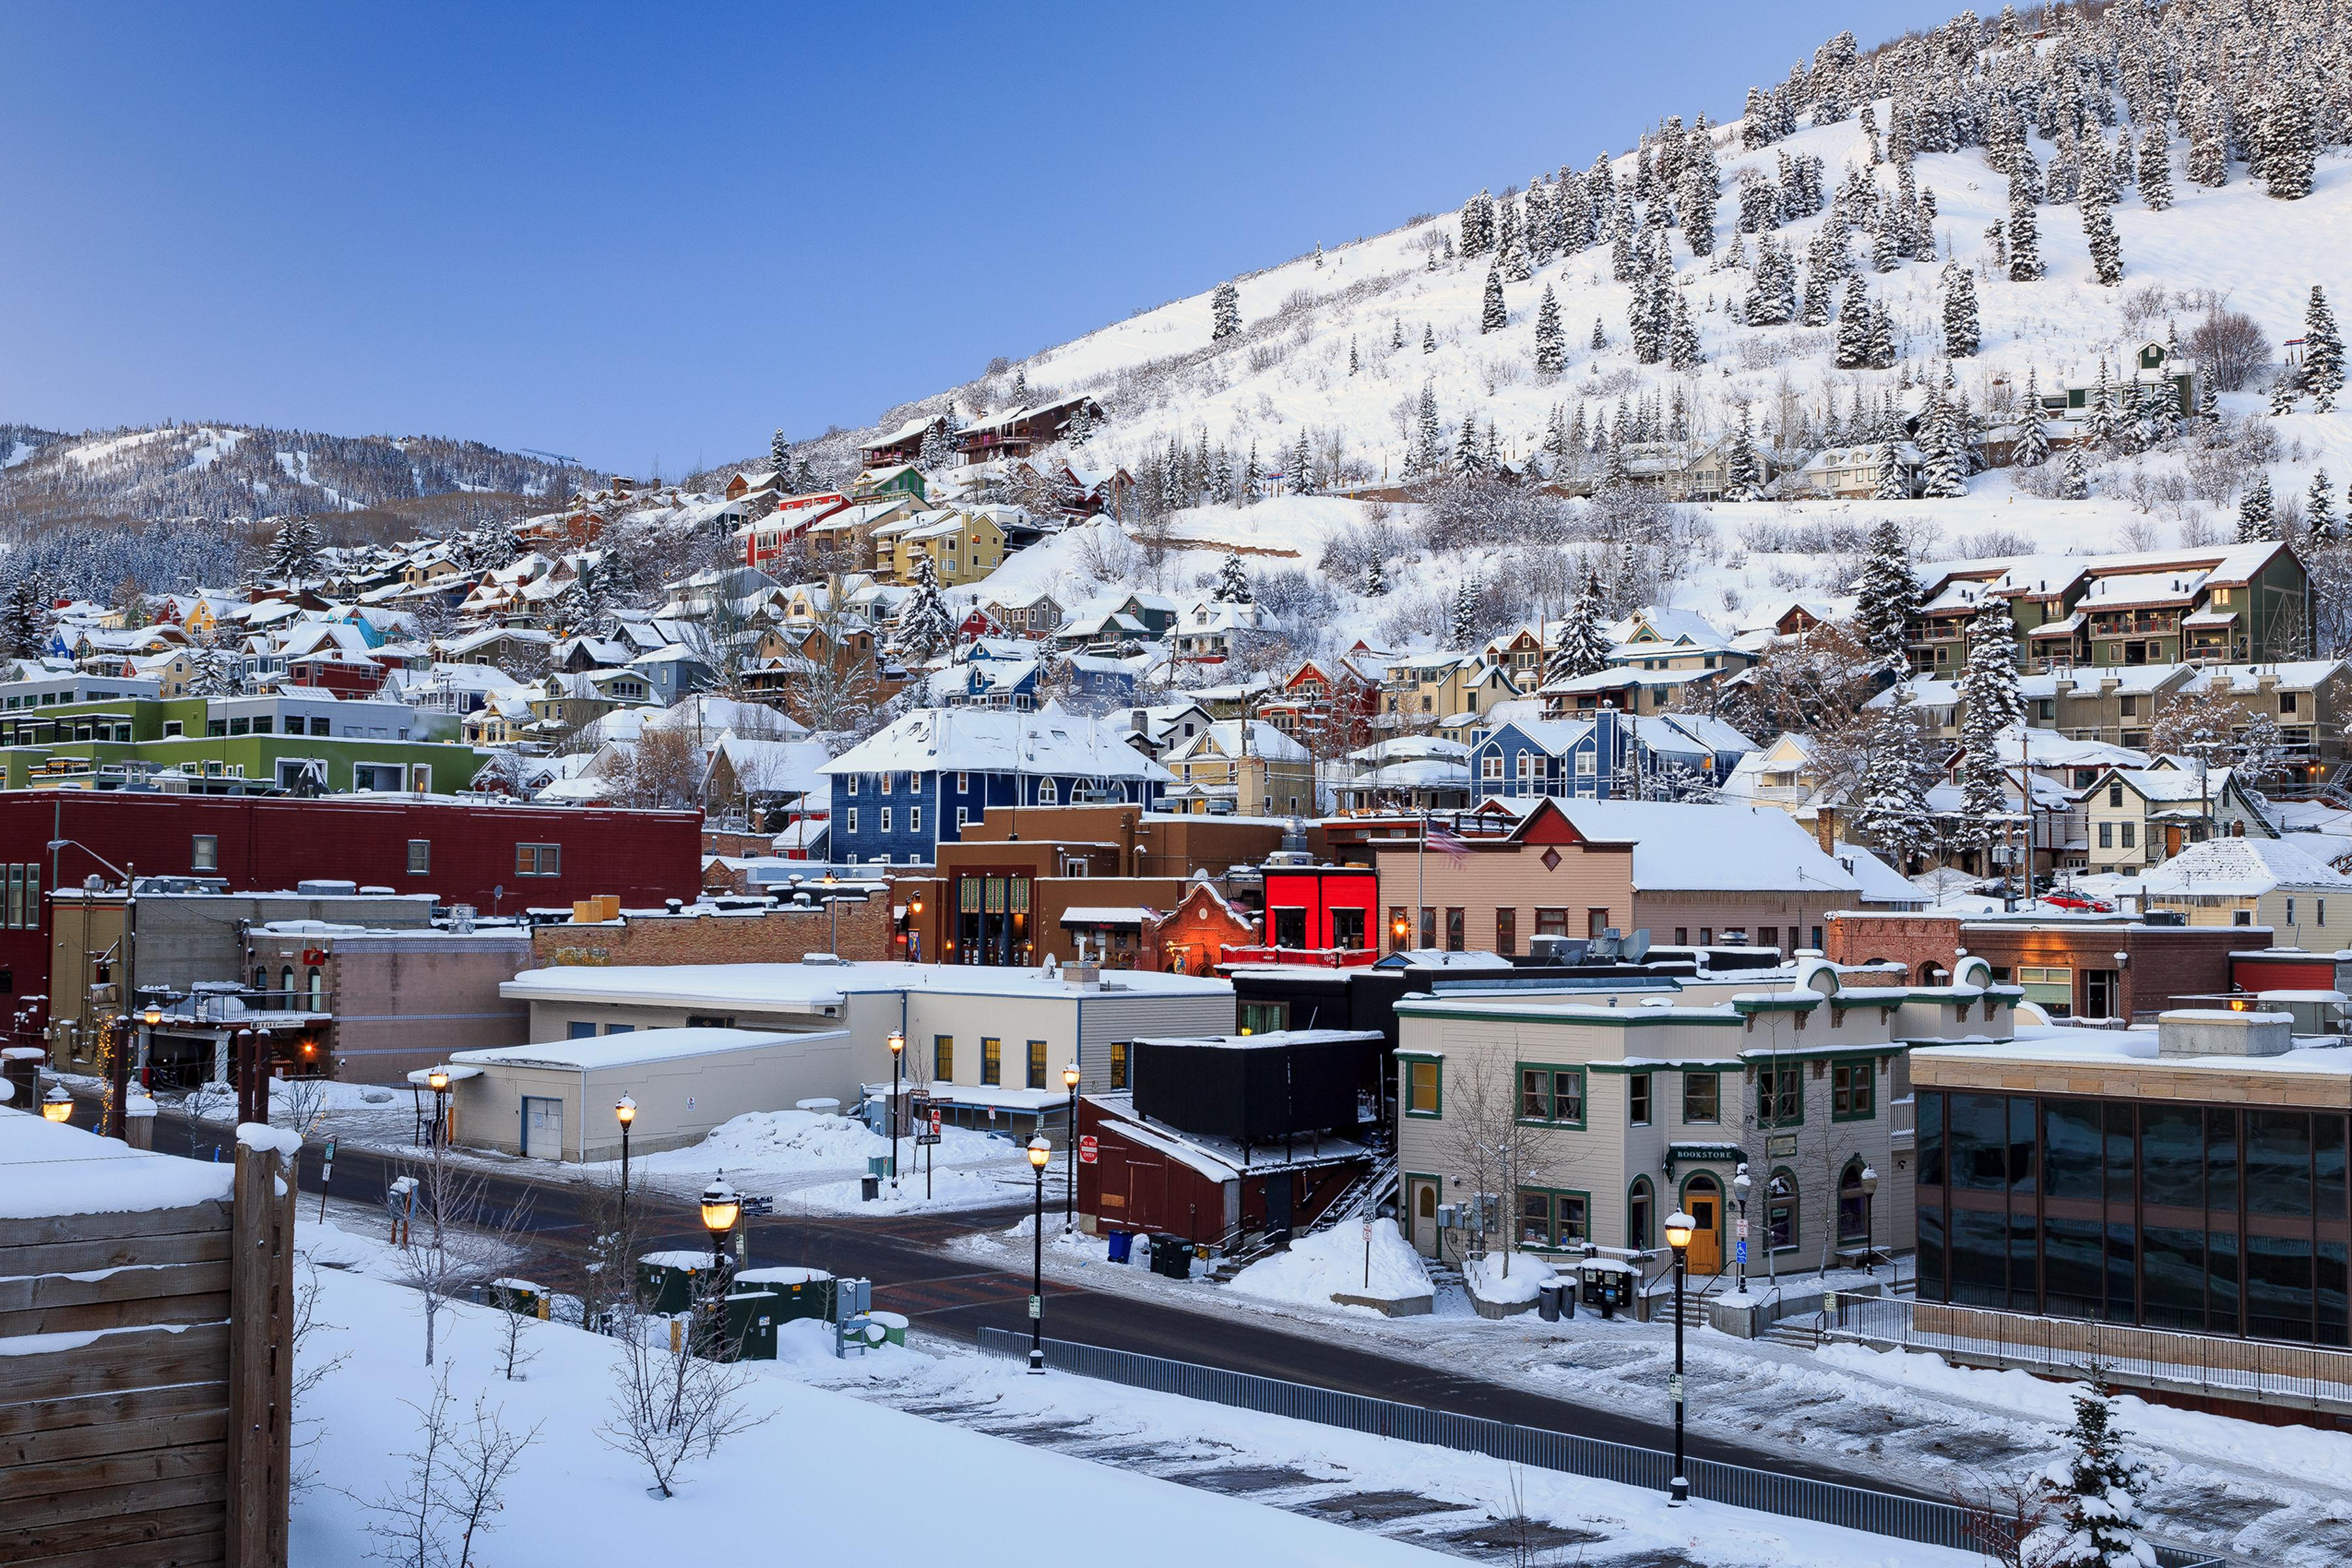 Walk just over 10 minutes to downtown Park City for shopping and restaurants.